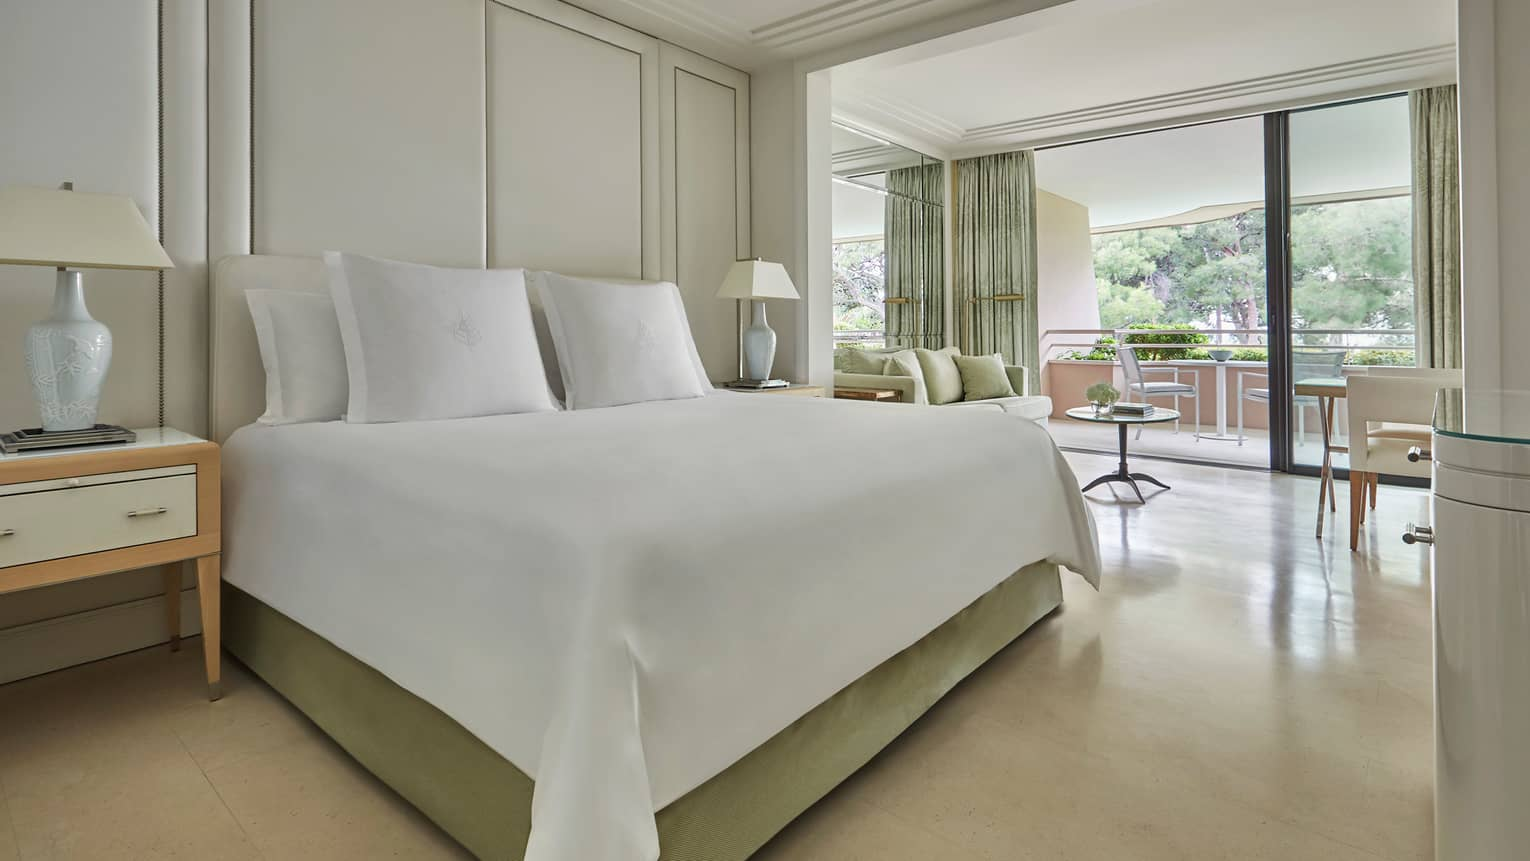 Deluxe Terrace Room modern white hotel room with beds, lamps, open wall to patio